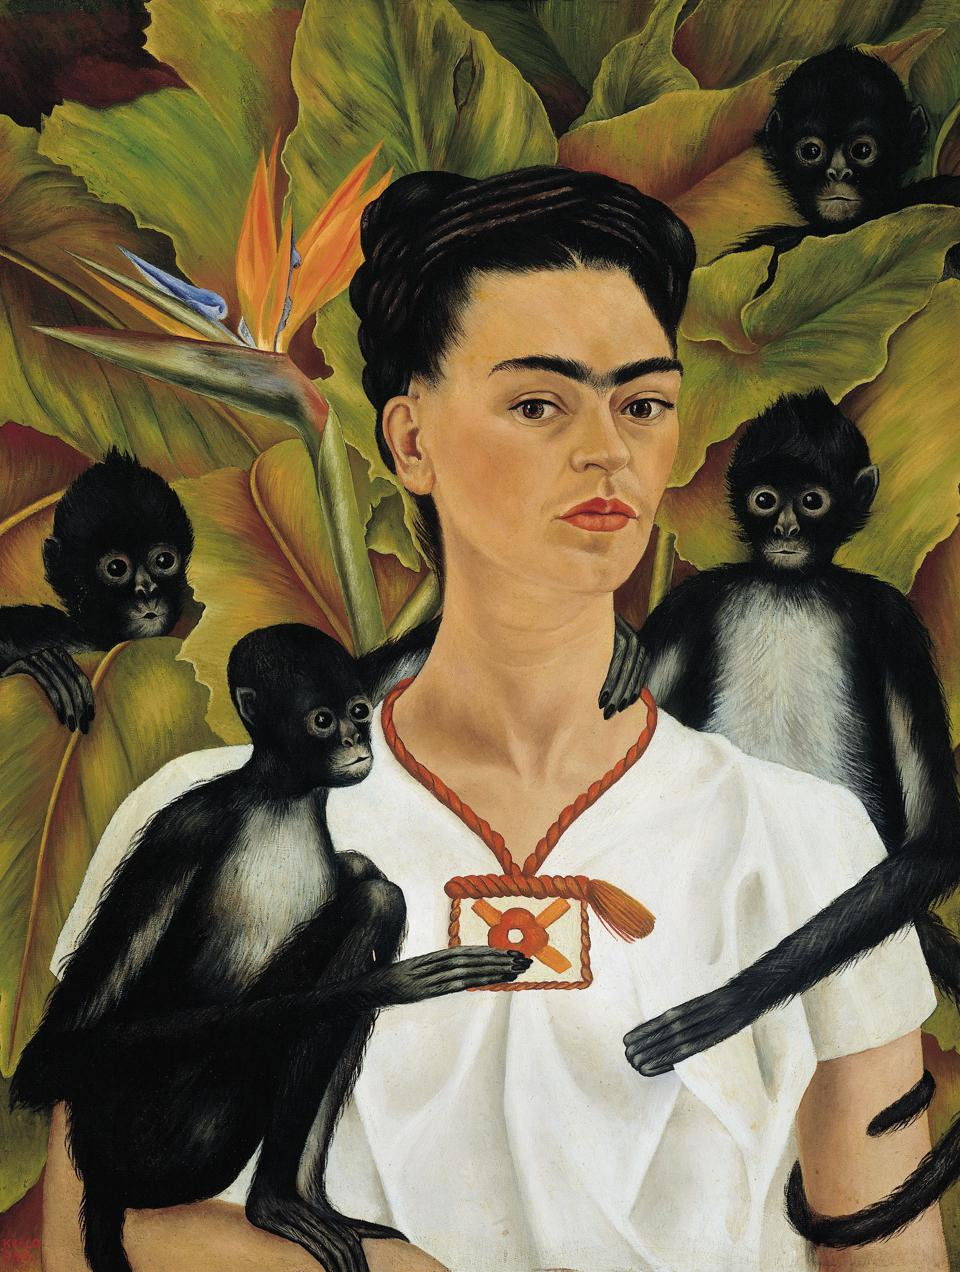 Frida Kahlo (Mexican, 1907–1954). Self-Portrait with Monkeys, 1943. Oil on canvas, 32 1/8 x 24 3/4 in. The Jacques and Natasha Gelman Collection of 20th Century Mexican Art and the Vergel Foundation.